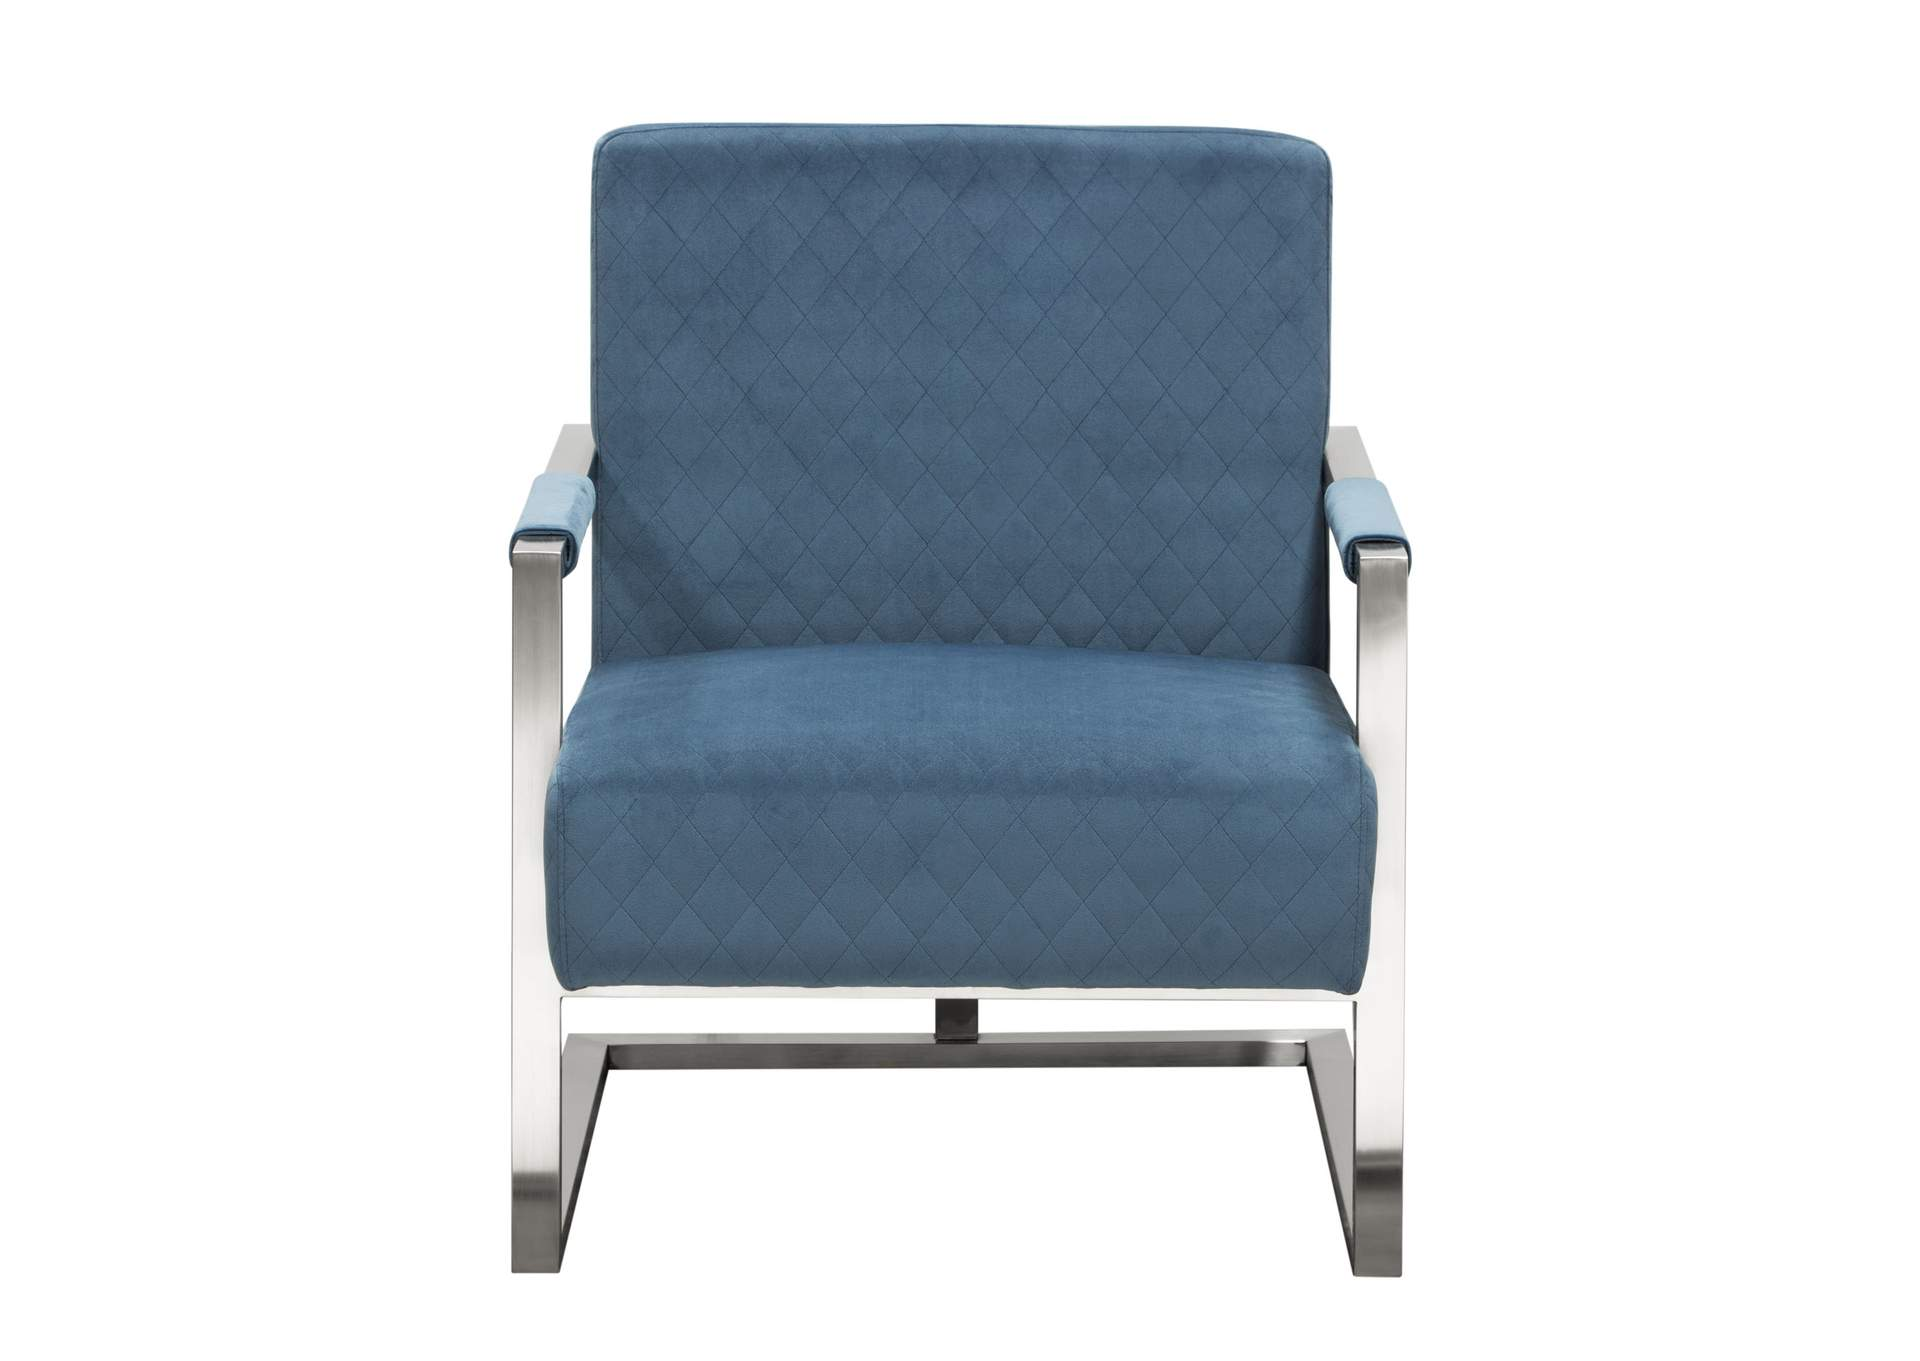 Picture of: Studio Accent Chair In Royal Blue Velvet With Diamond Tuft And Stainless Frame By Nova Lifestyle Big Box Furniture Discount Furniture Stores In Miami Florida